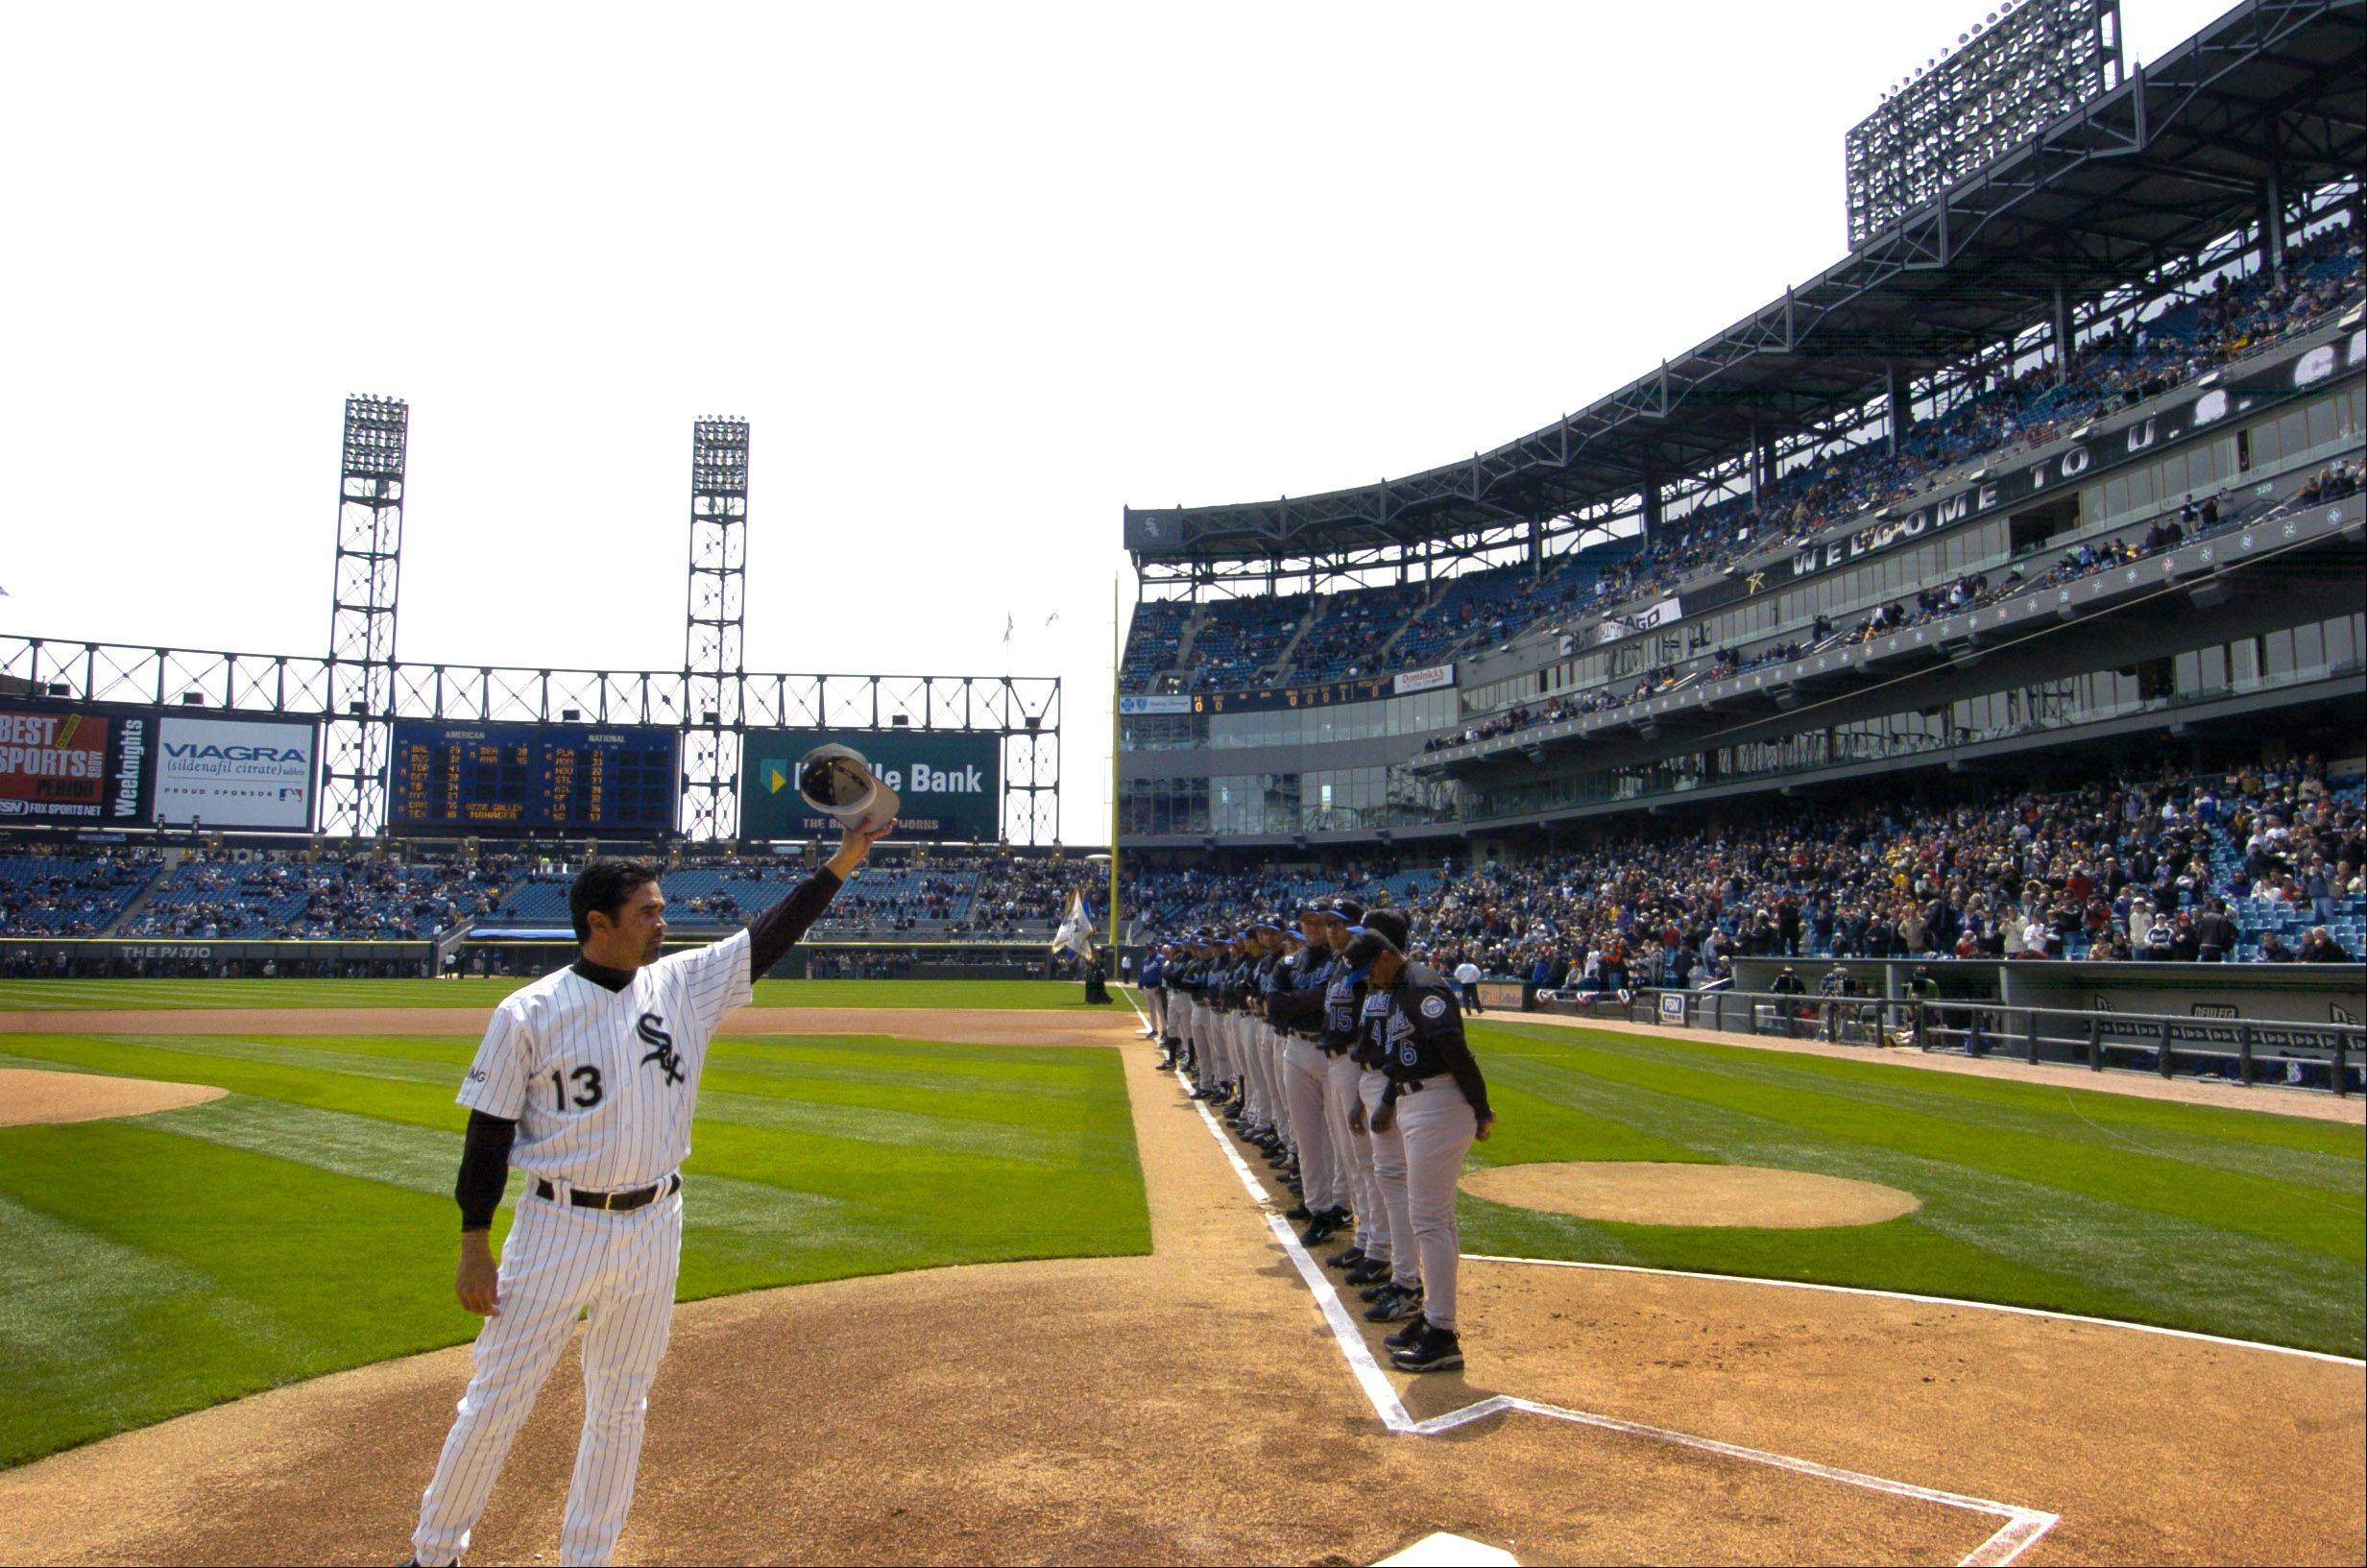 Ozzie Guillen waves to the crowd.